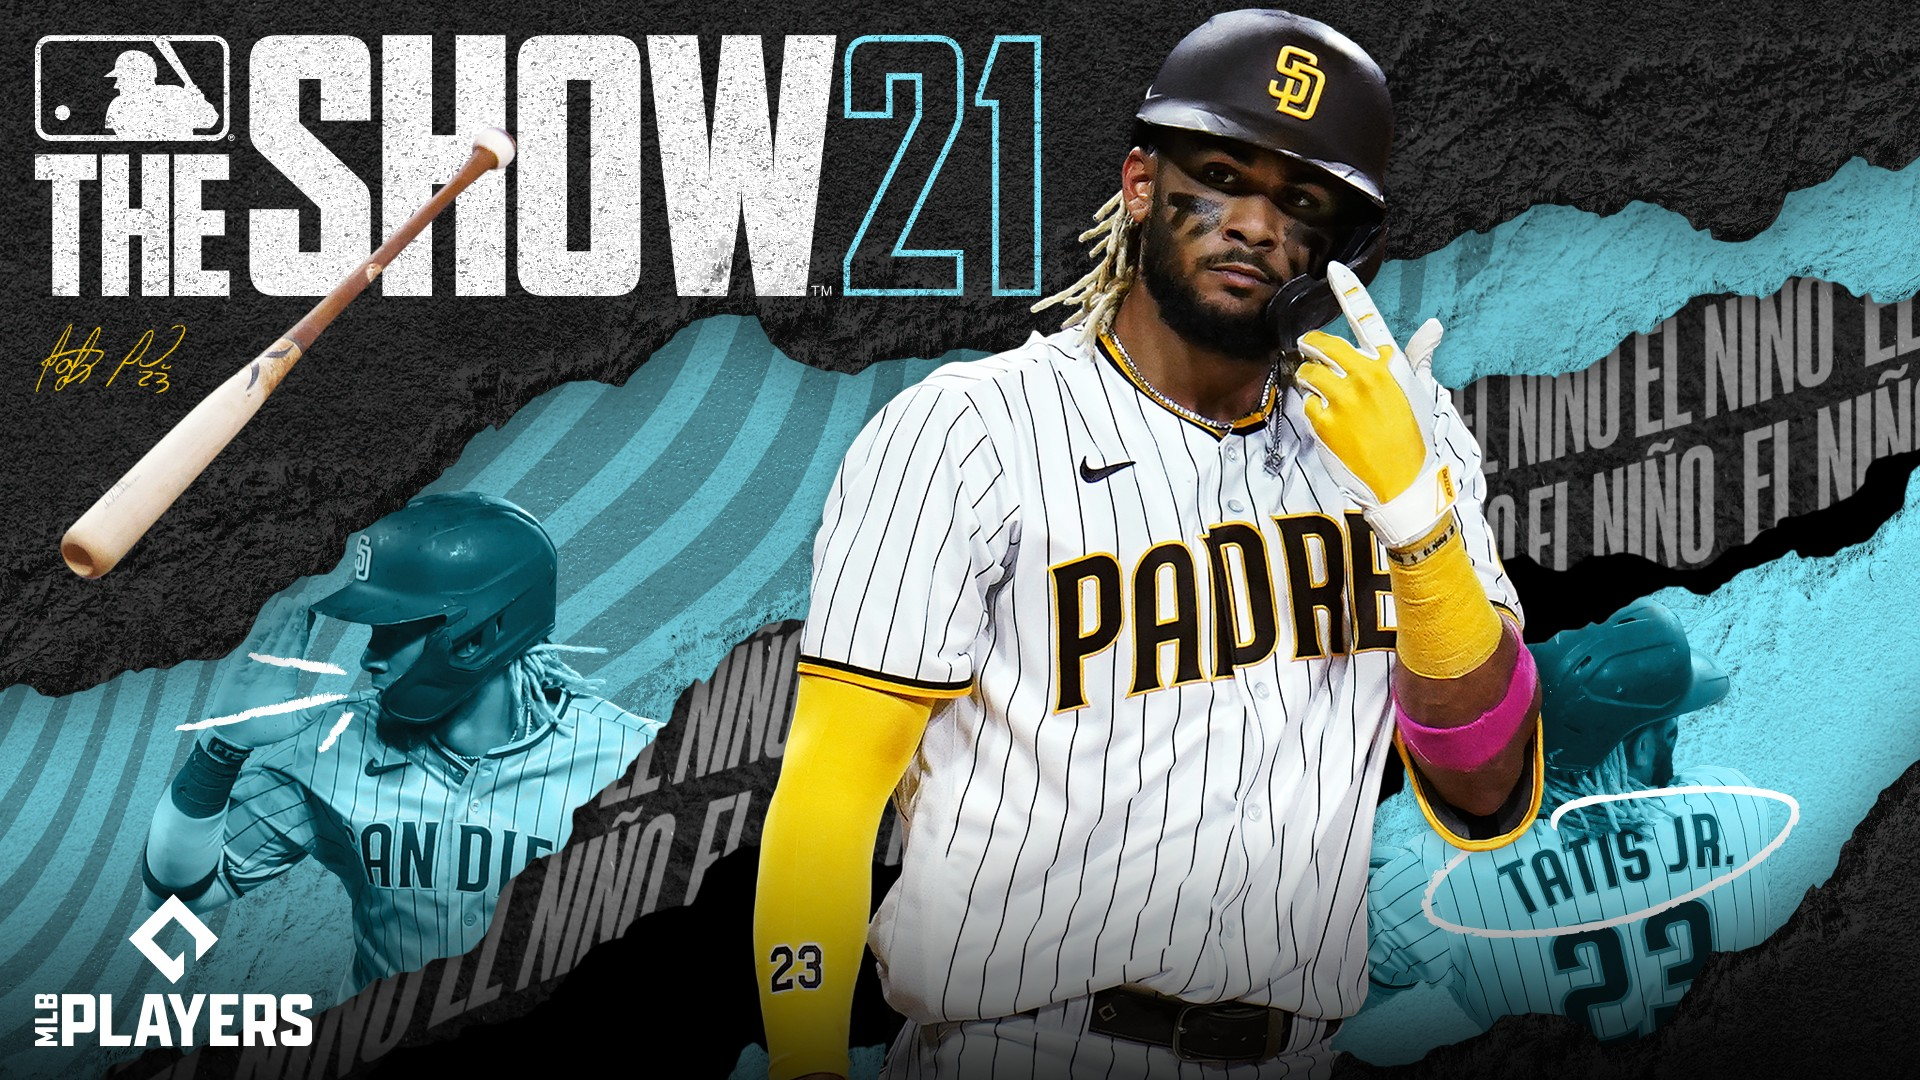 Video For MLB The Show 21 is Available Now on Xbox One, Xbox Series X|S, and Xbox Game Pass